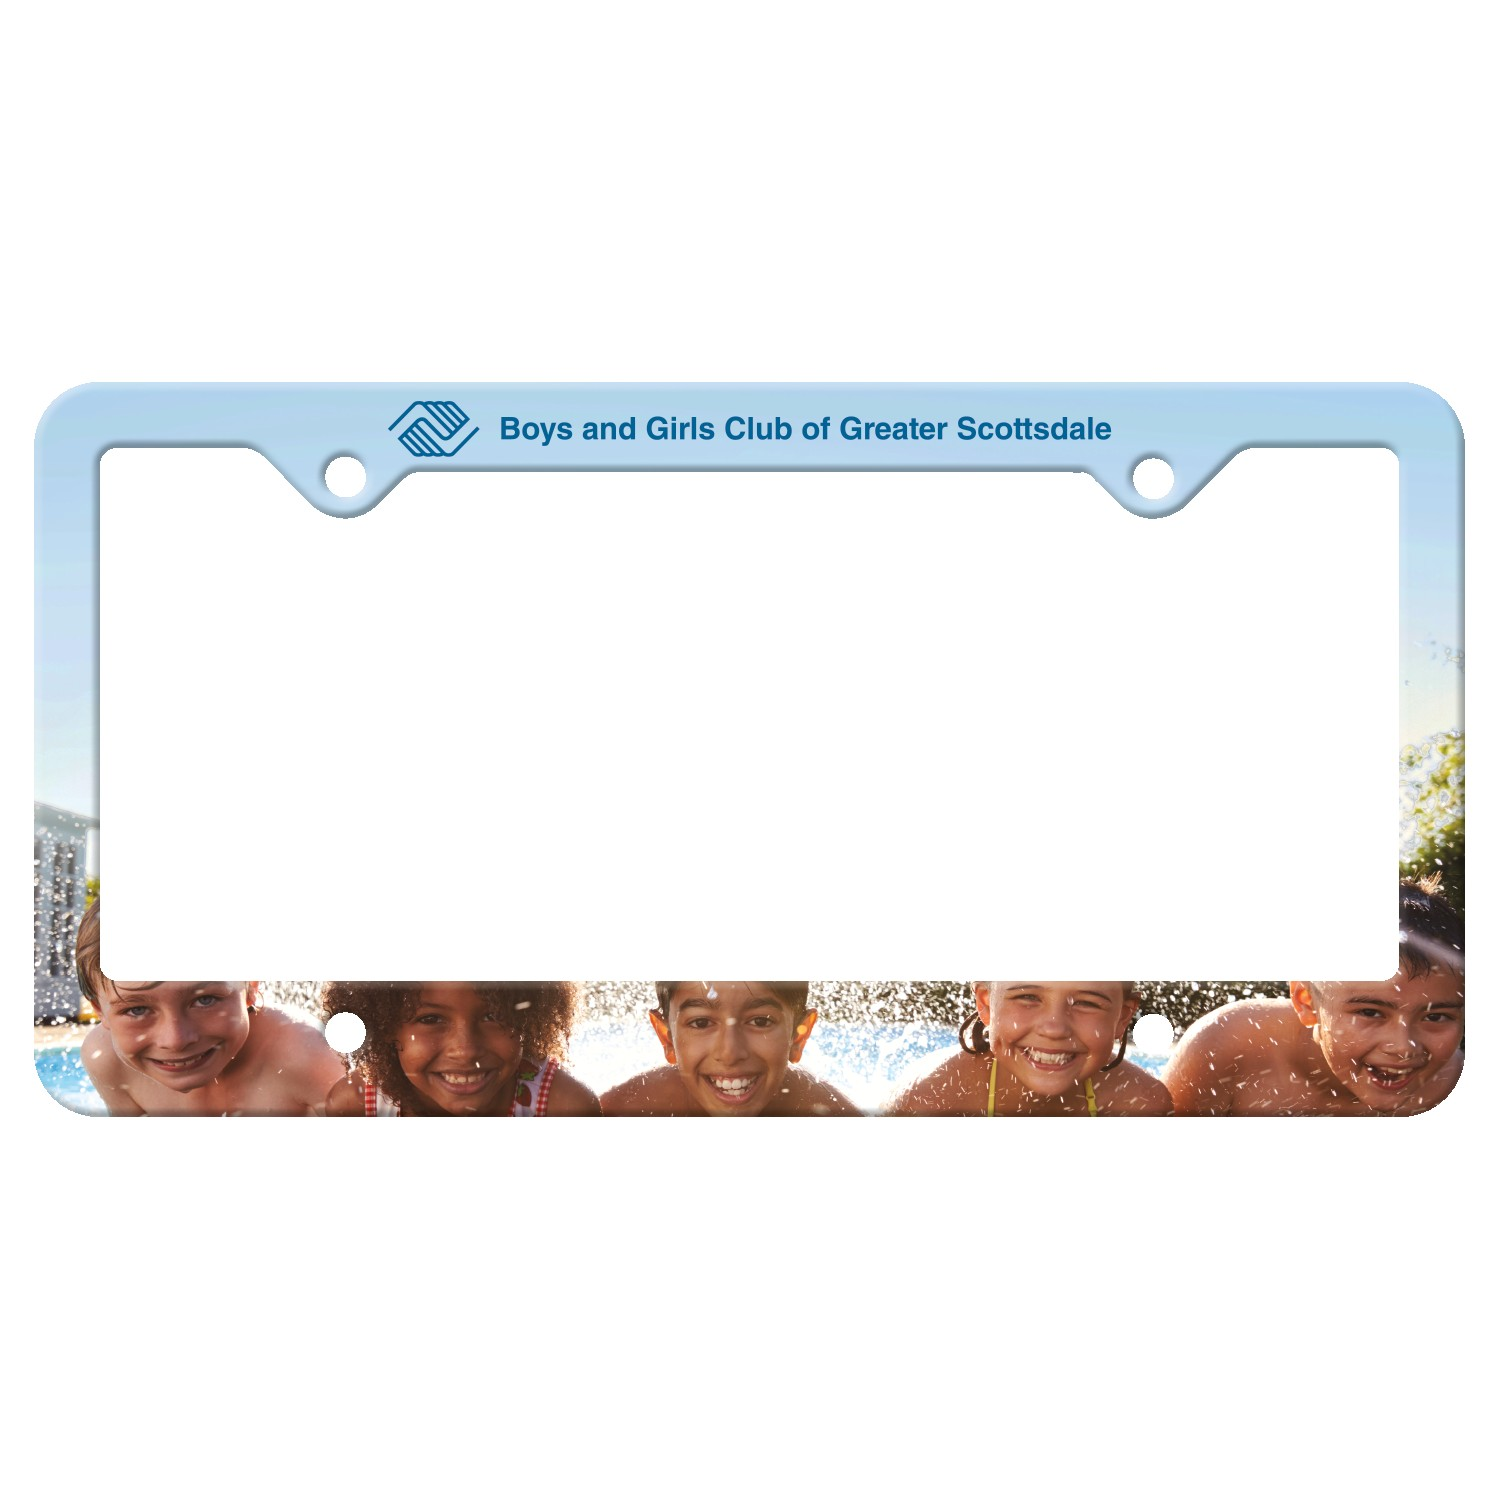 365529302-183 - Auto License Frame Full Color w/ 4 Holes & Large Bottom Straight Panel - thumbnail